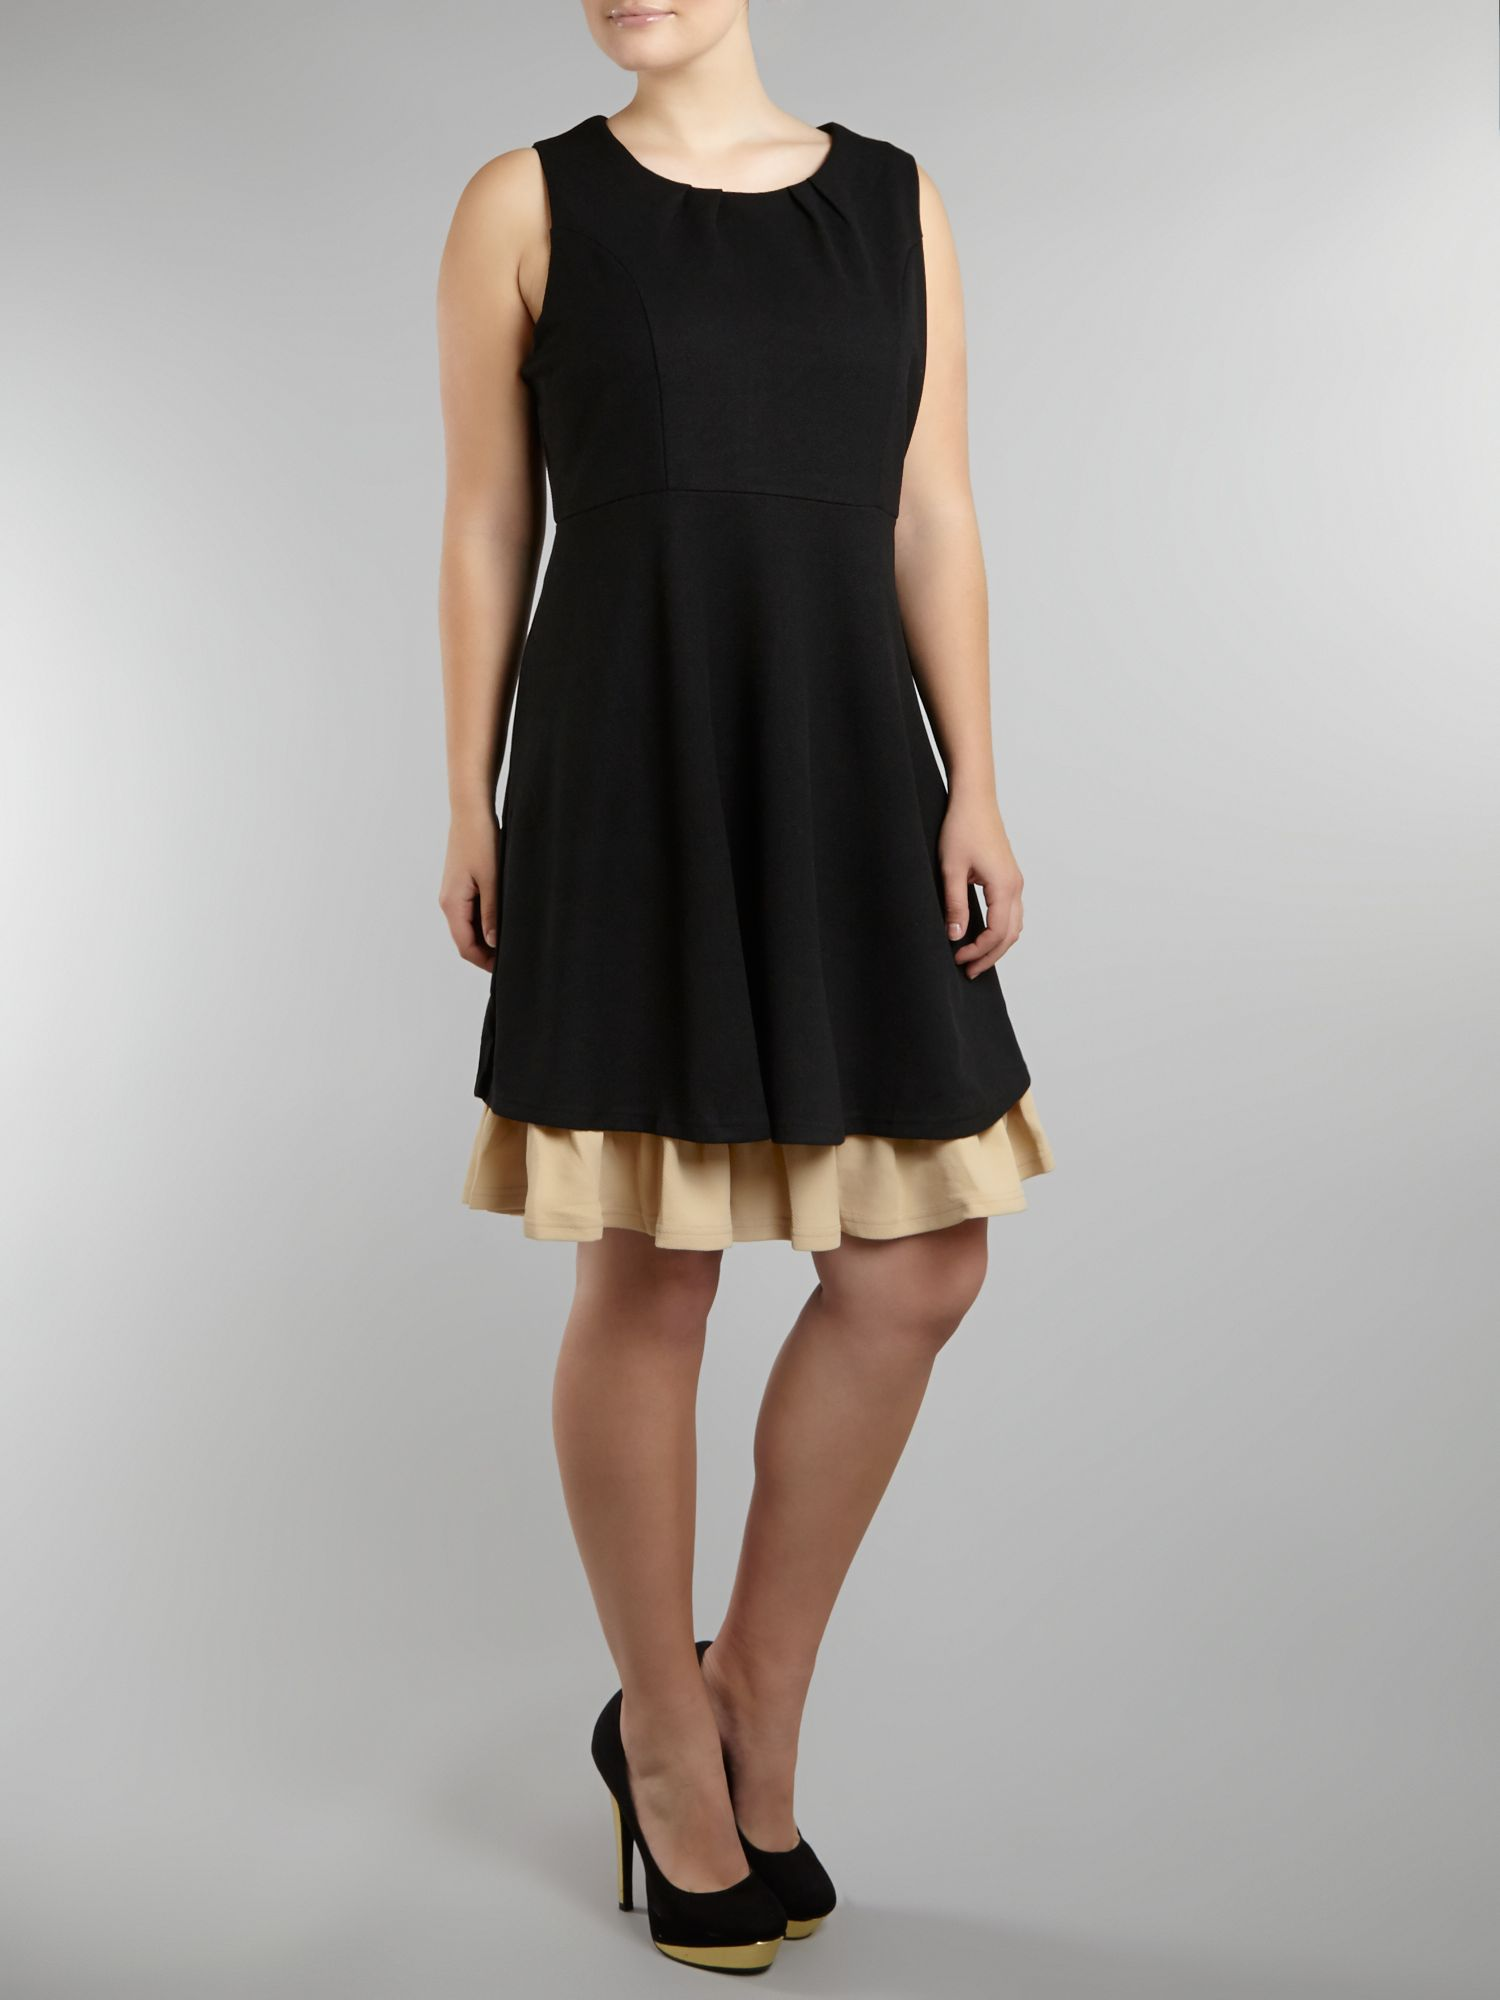 Contrast double hem skater dress